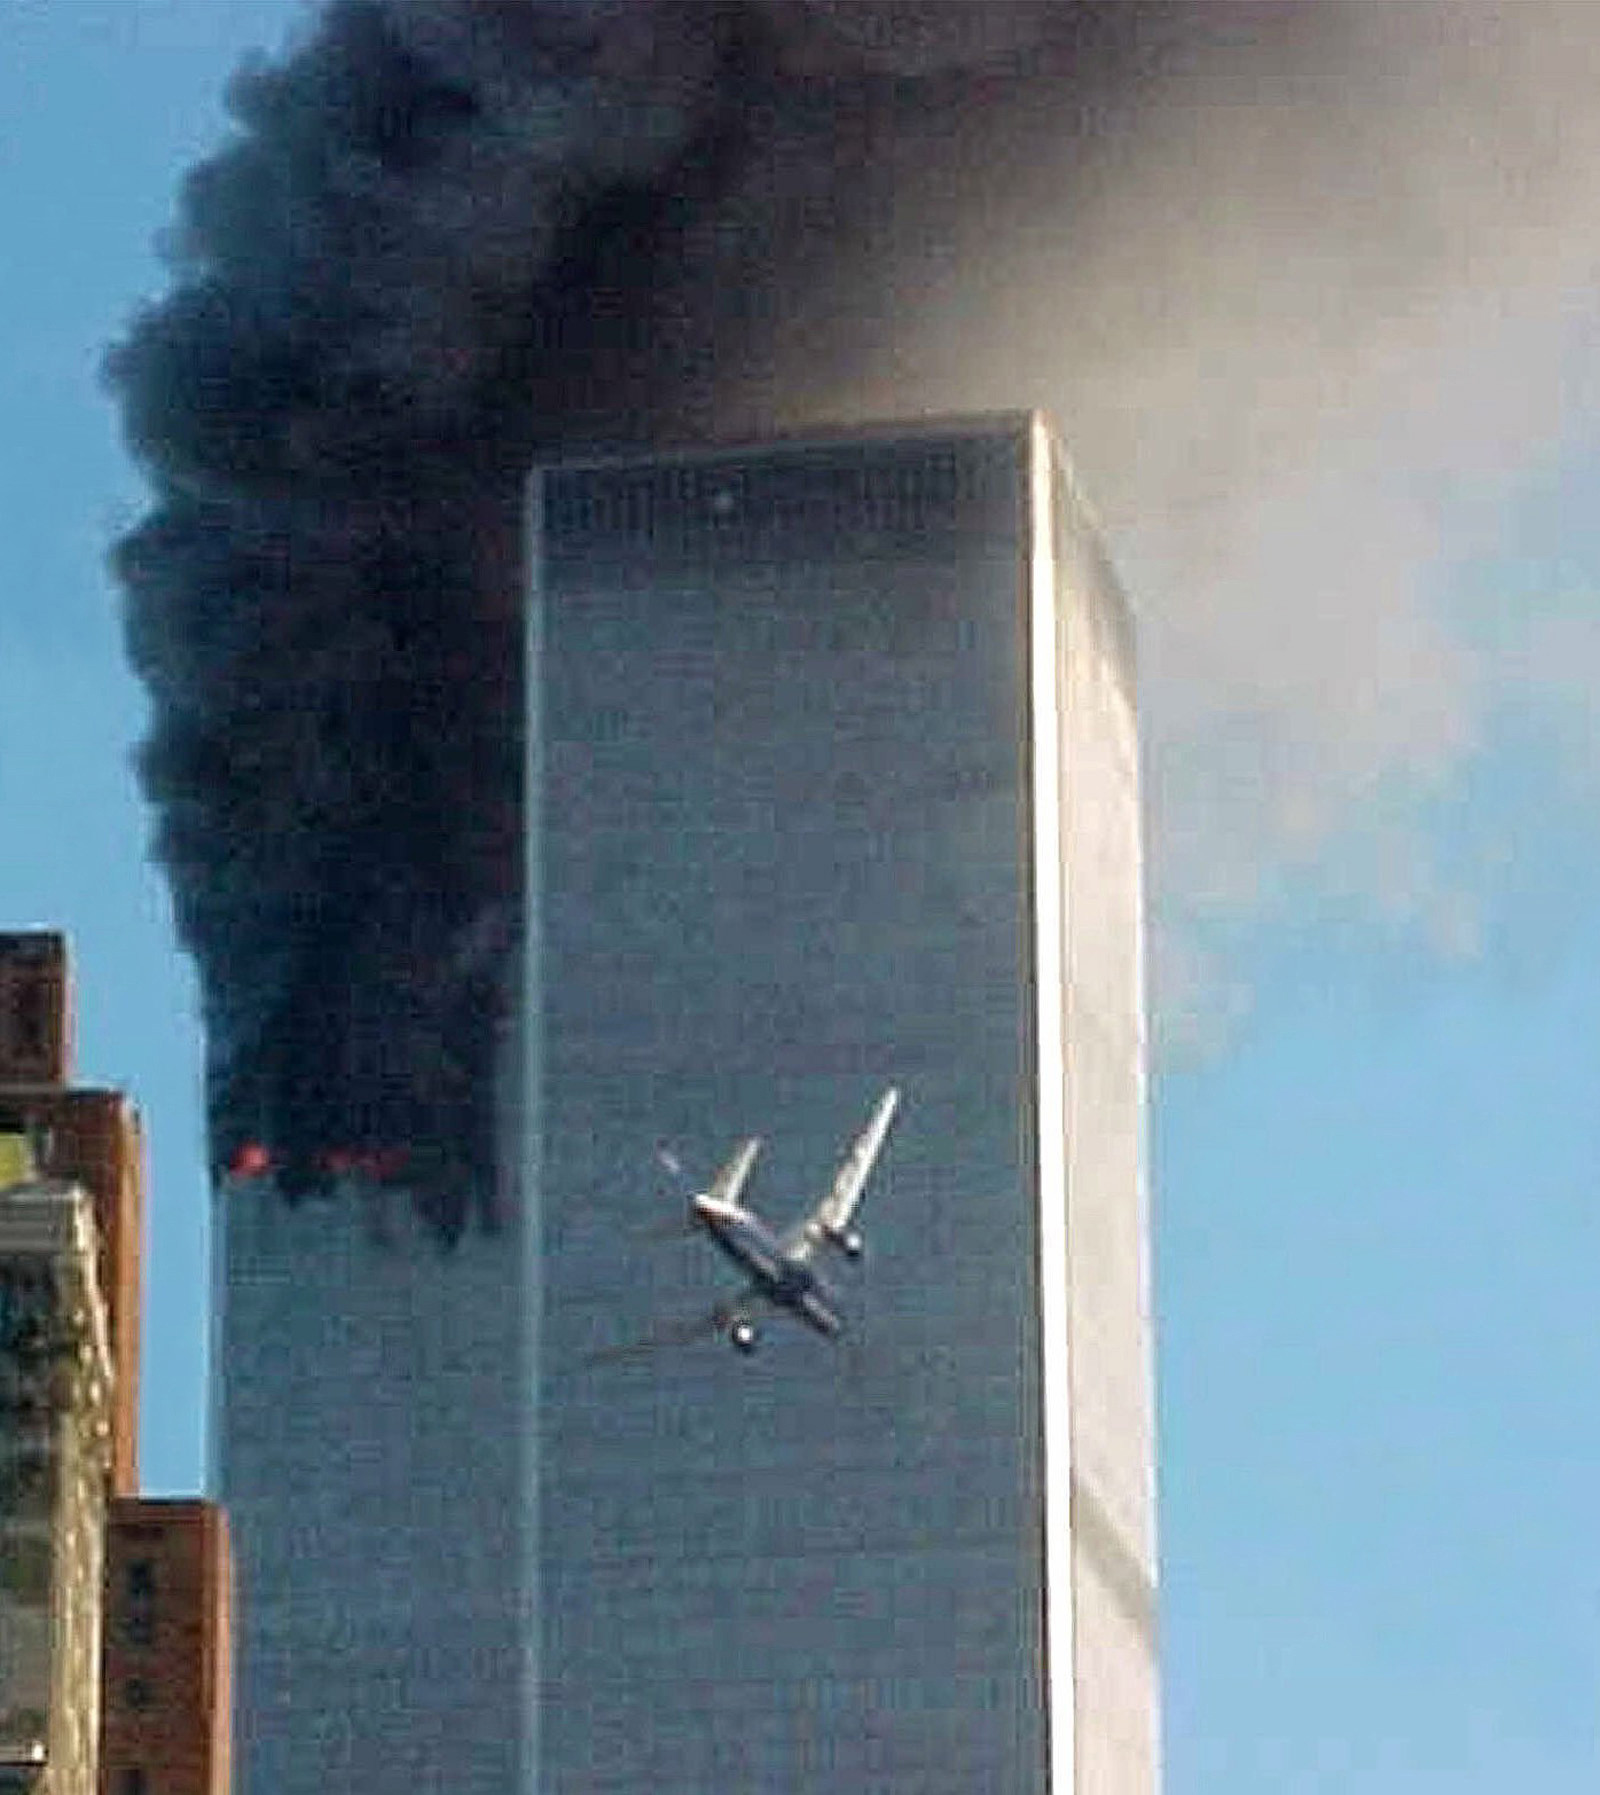 september 11 2001 attacks